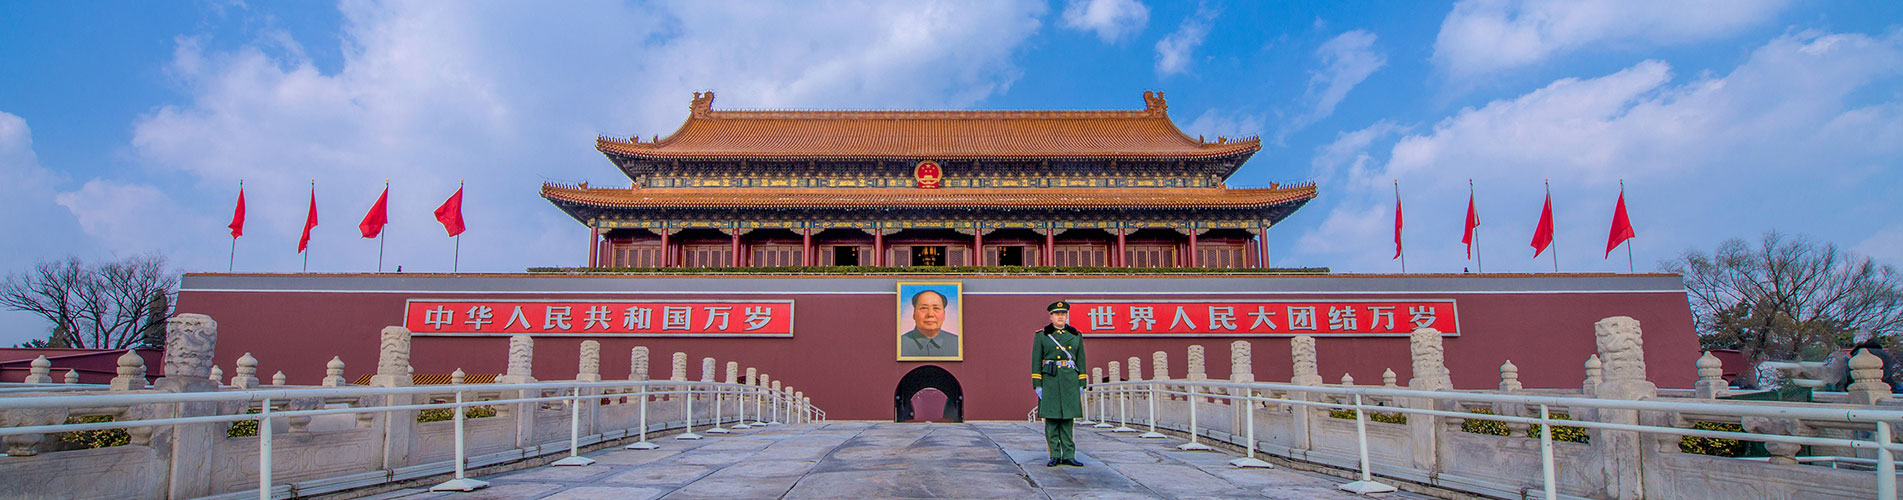 the Tian'anmen